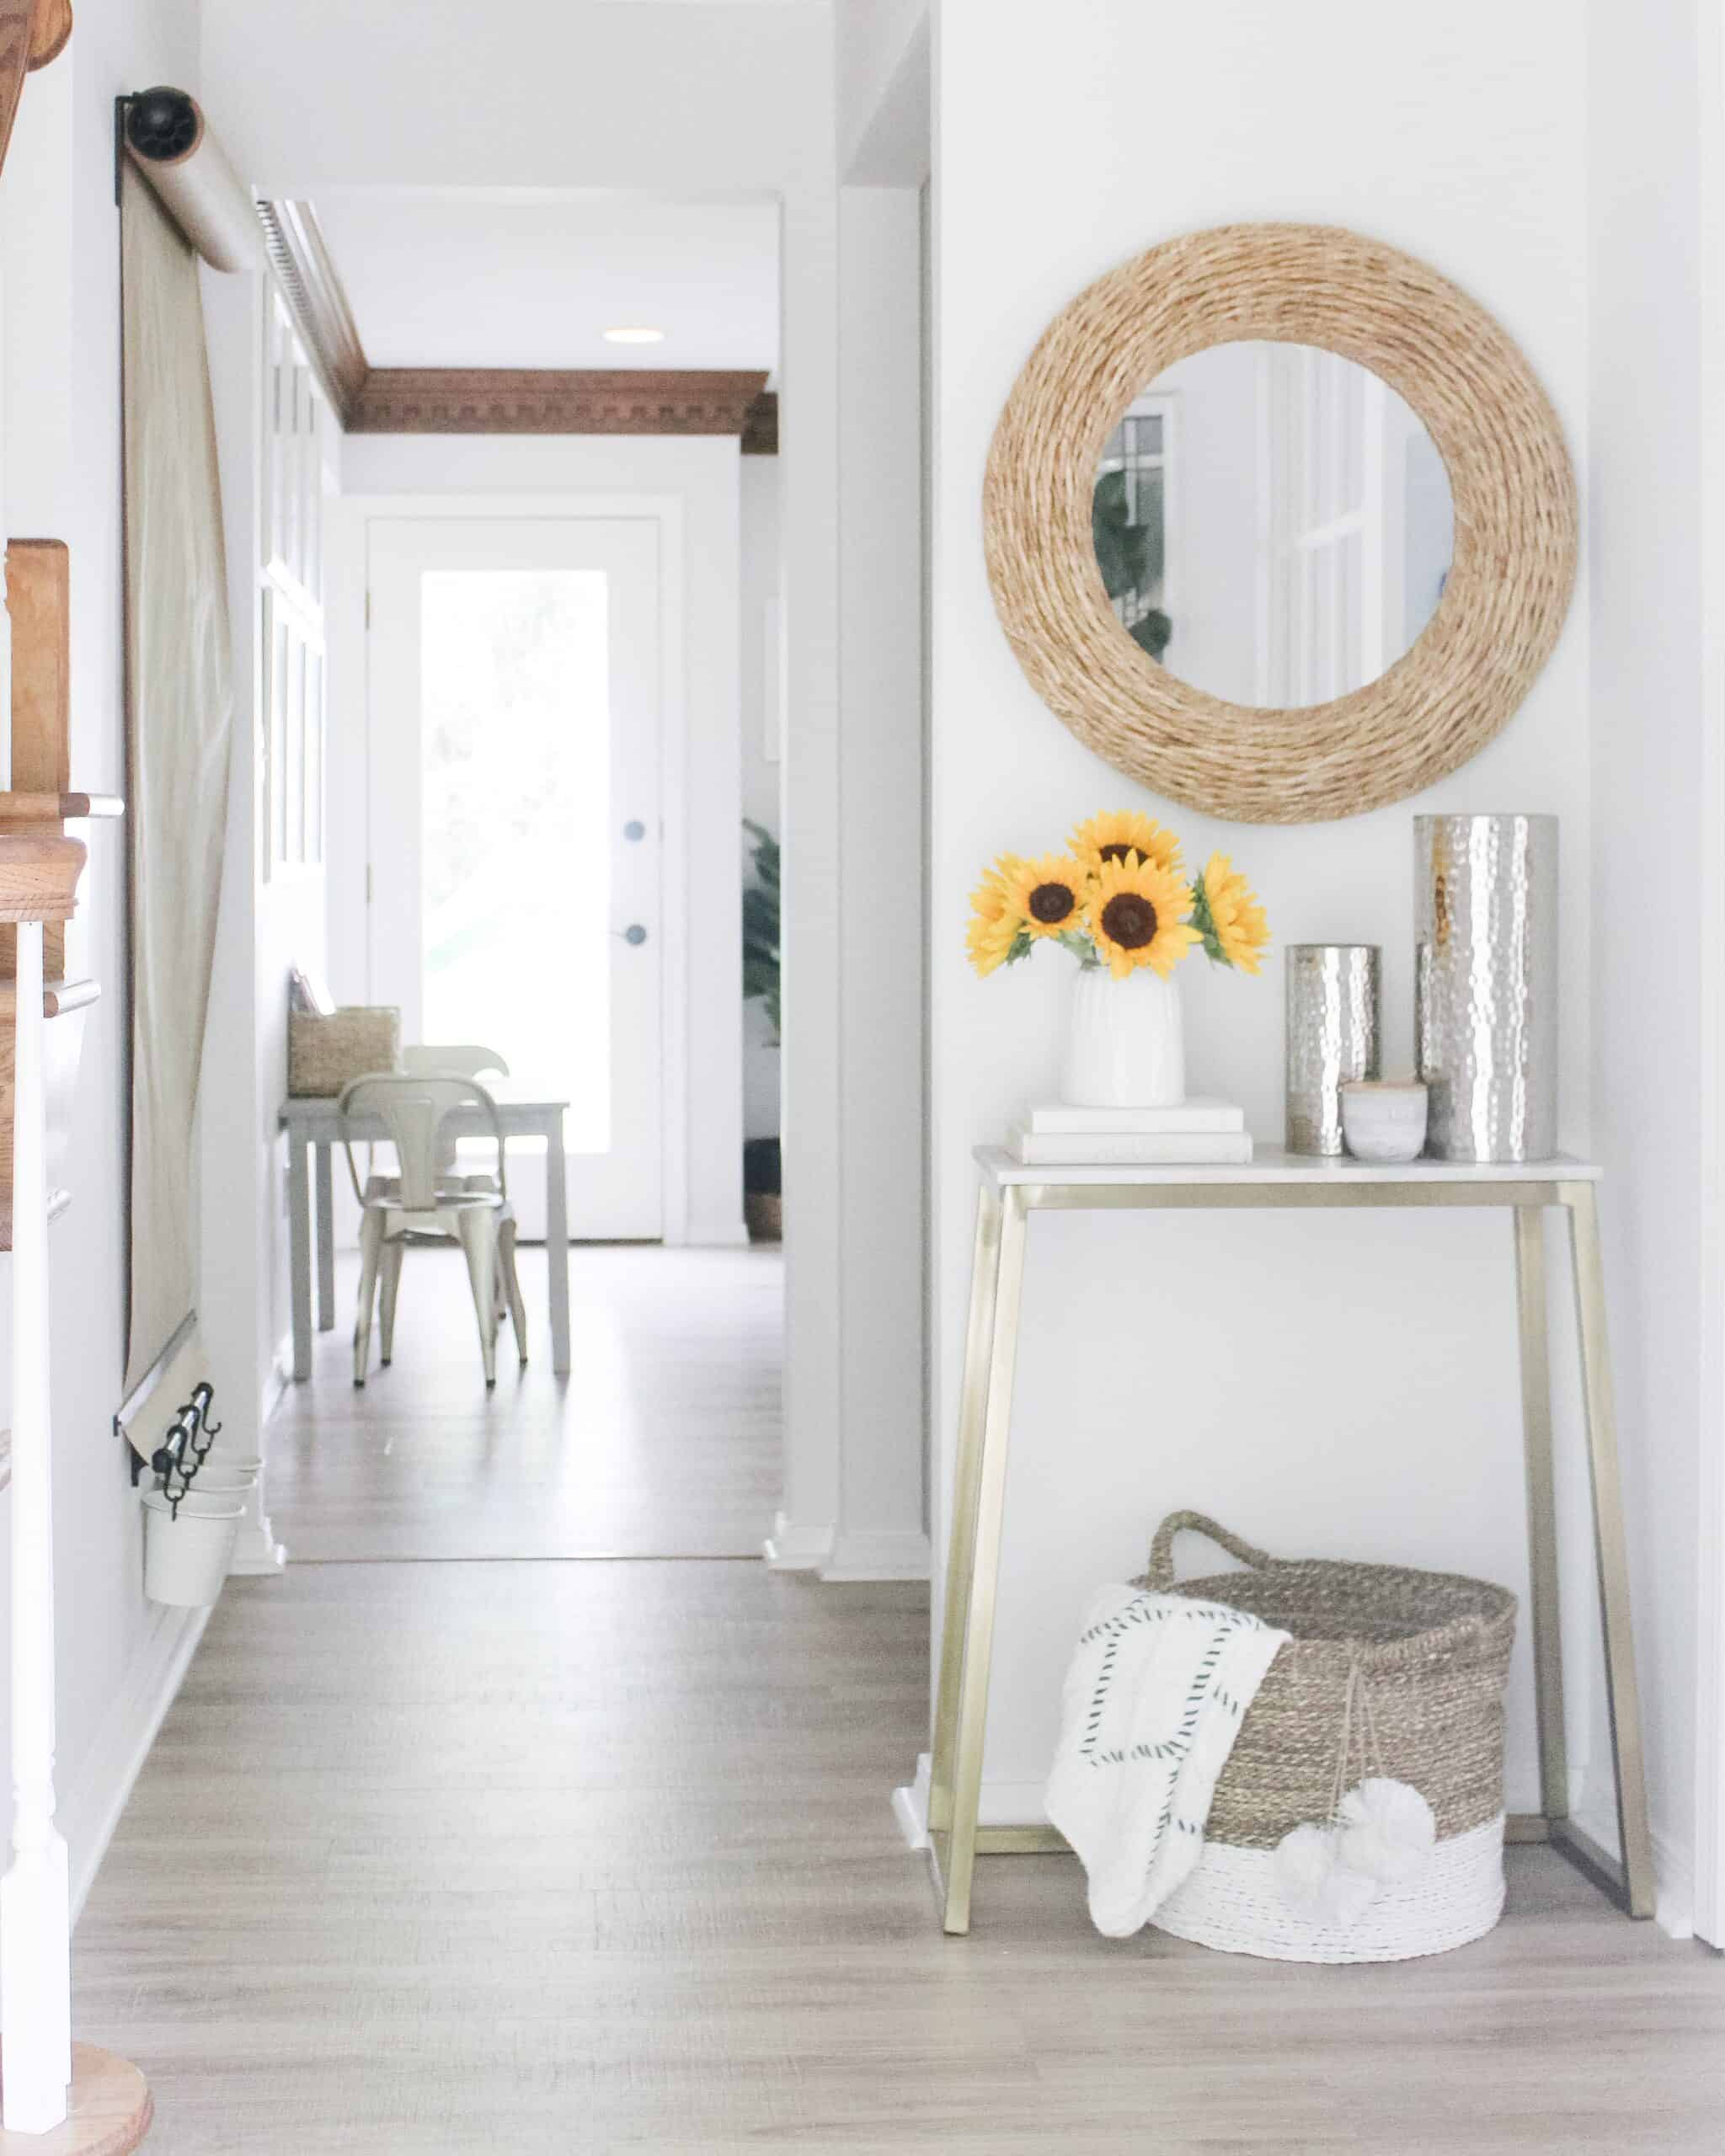 DIY wall mounted easel in a small entry way